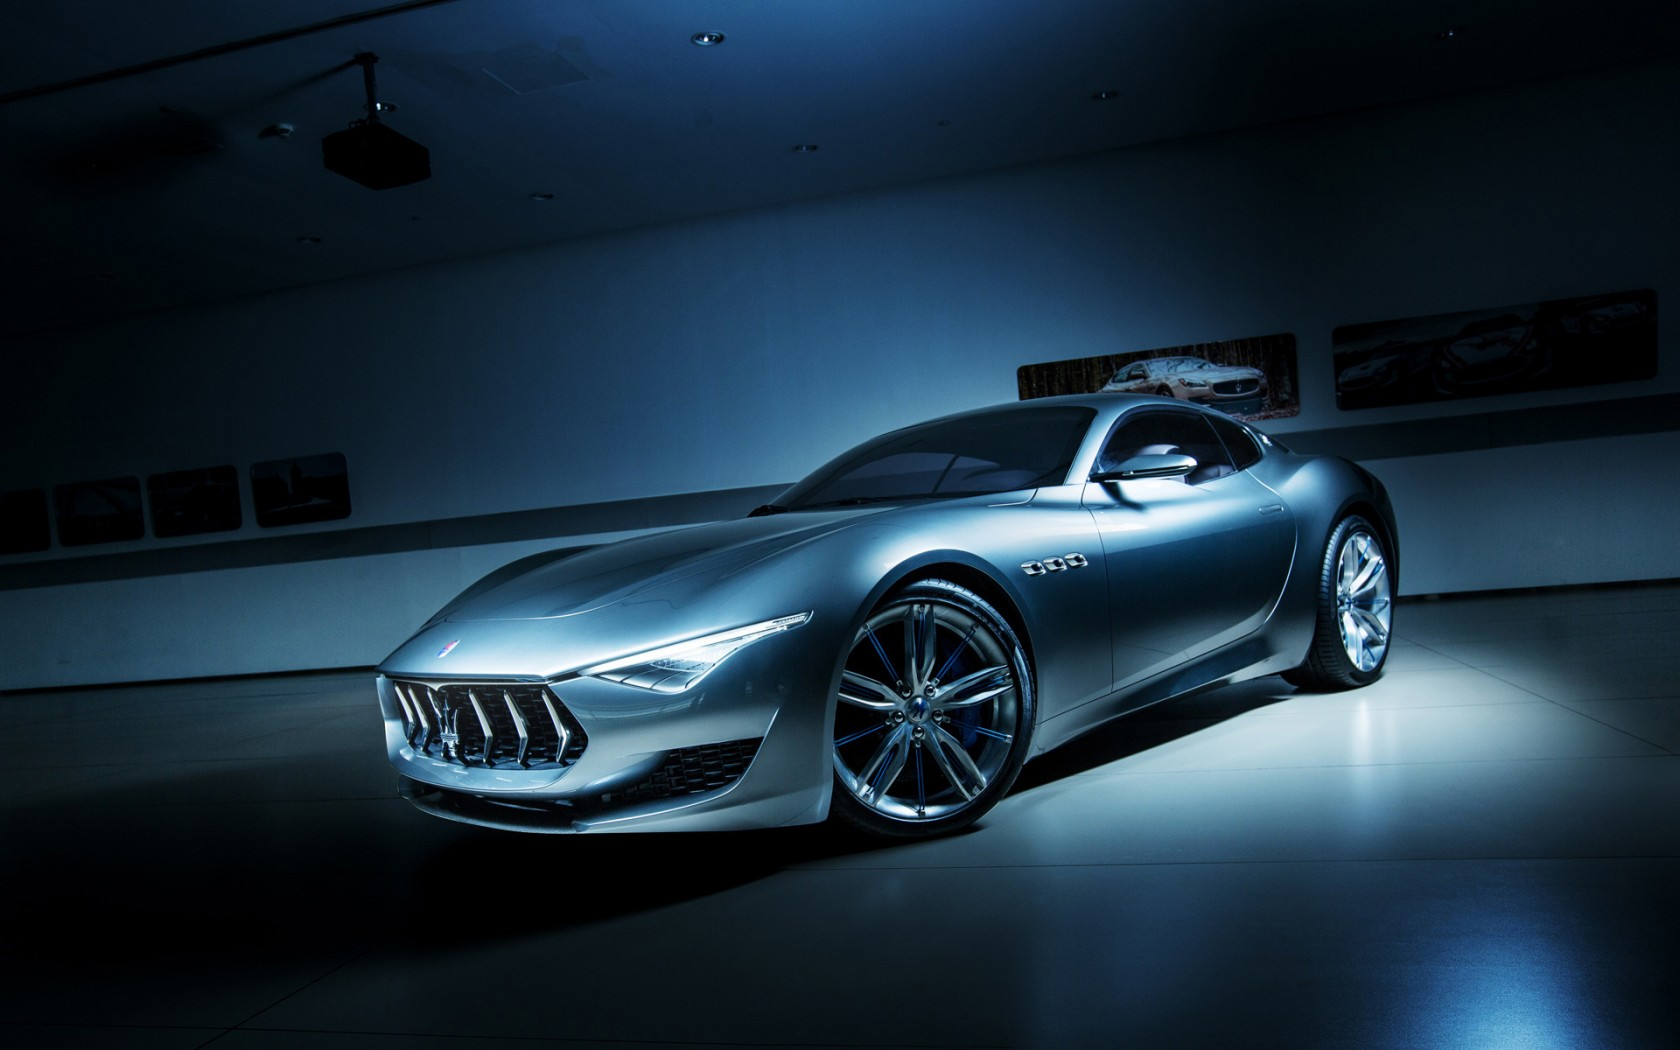 Bmw Full Hd Wallpaper 2016 Maserati Alfieri Wallpapers Hd Wallpapers Id 16462